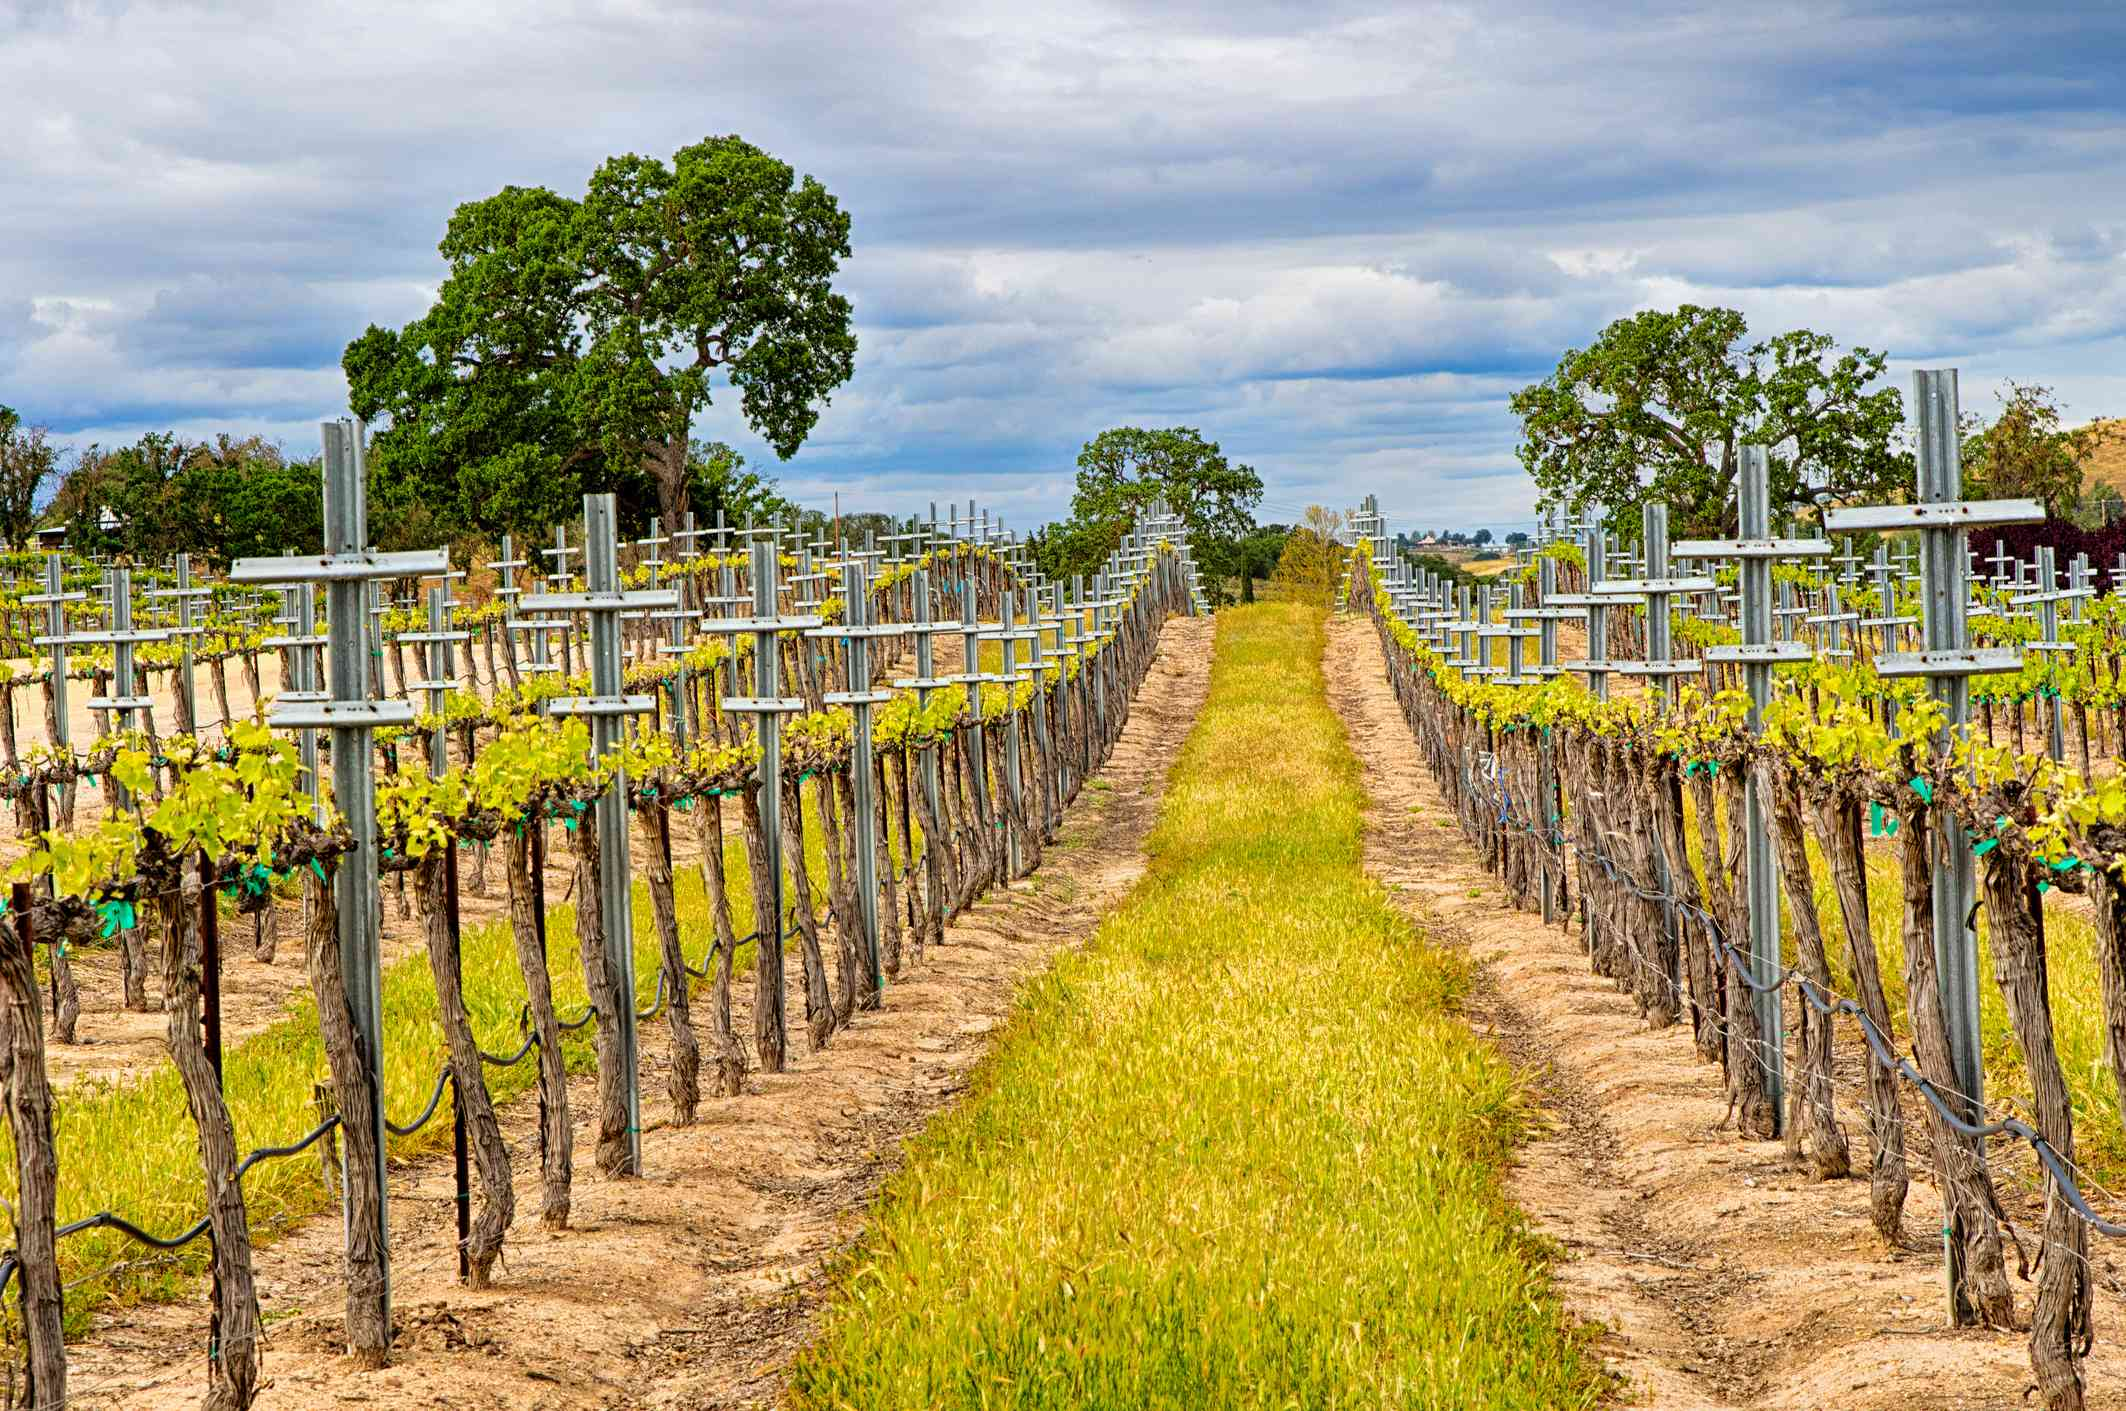 A vineyard near Paso Robles, CA, with new growth in the Spring.